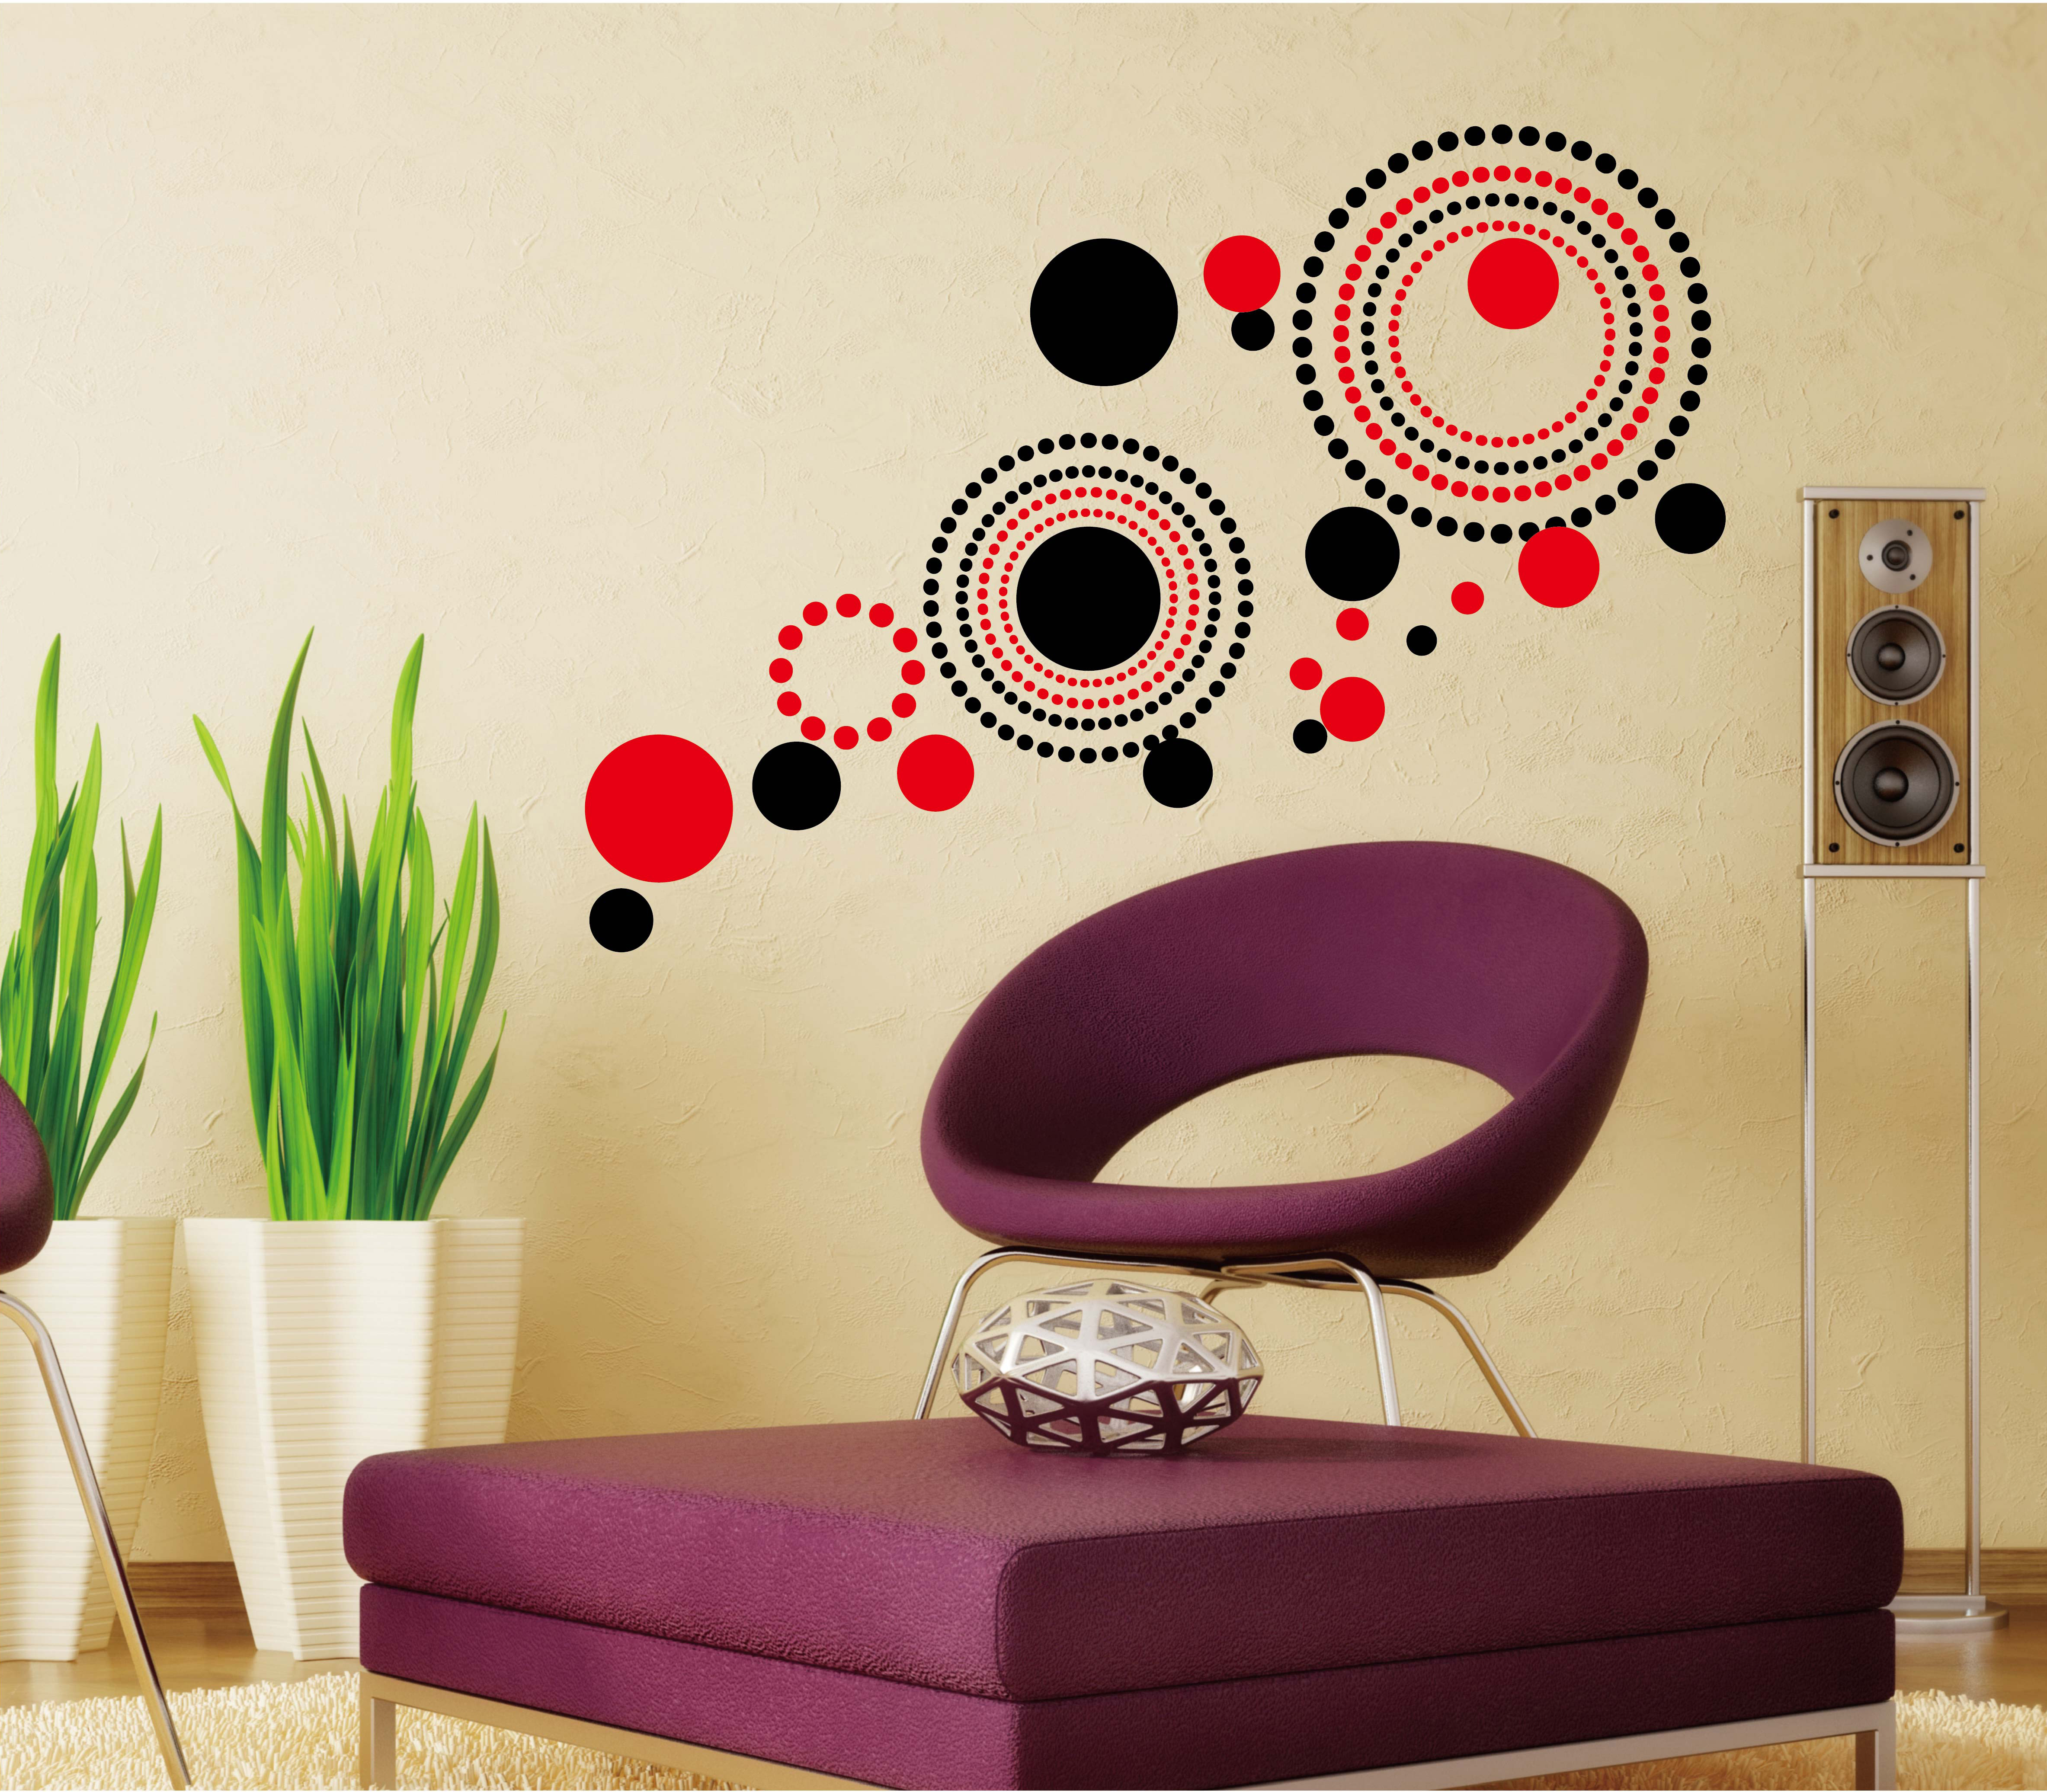 Wall decal dubai sharjah abu dhabi uae online from souq jadopado - Abstract Red And Black Circles Wall Decal Sta 162